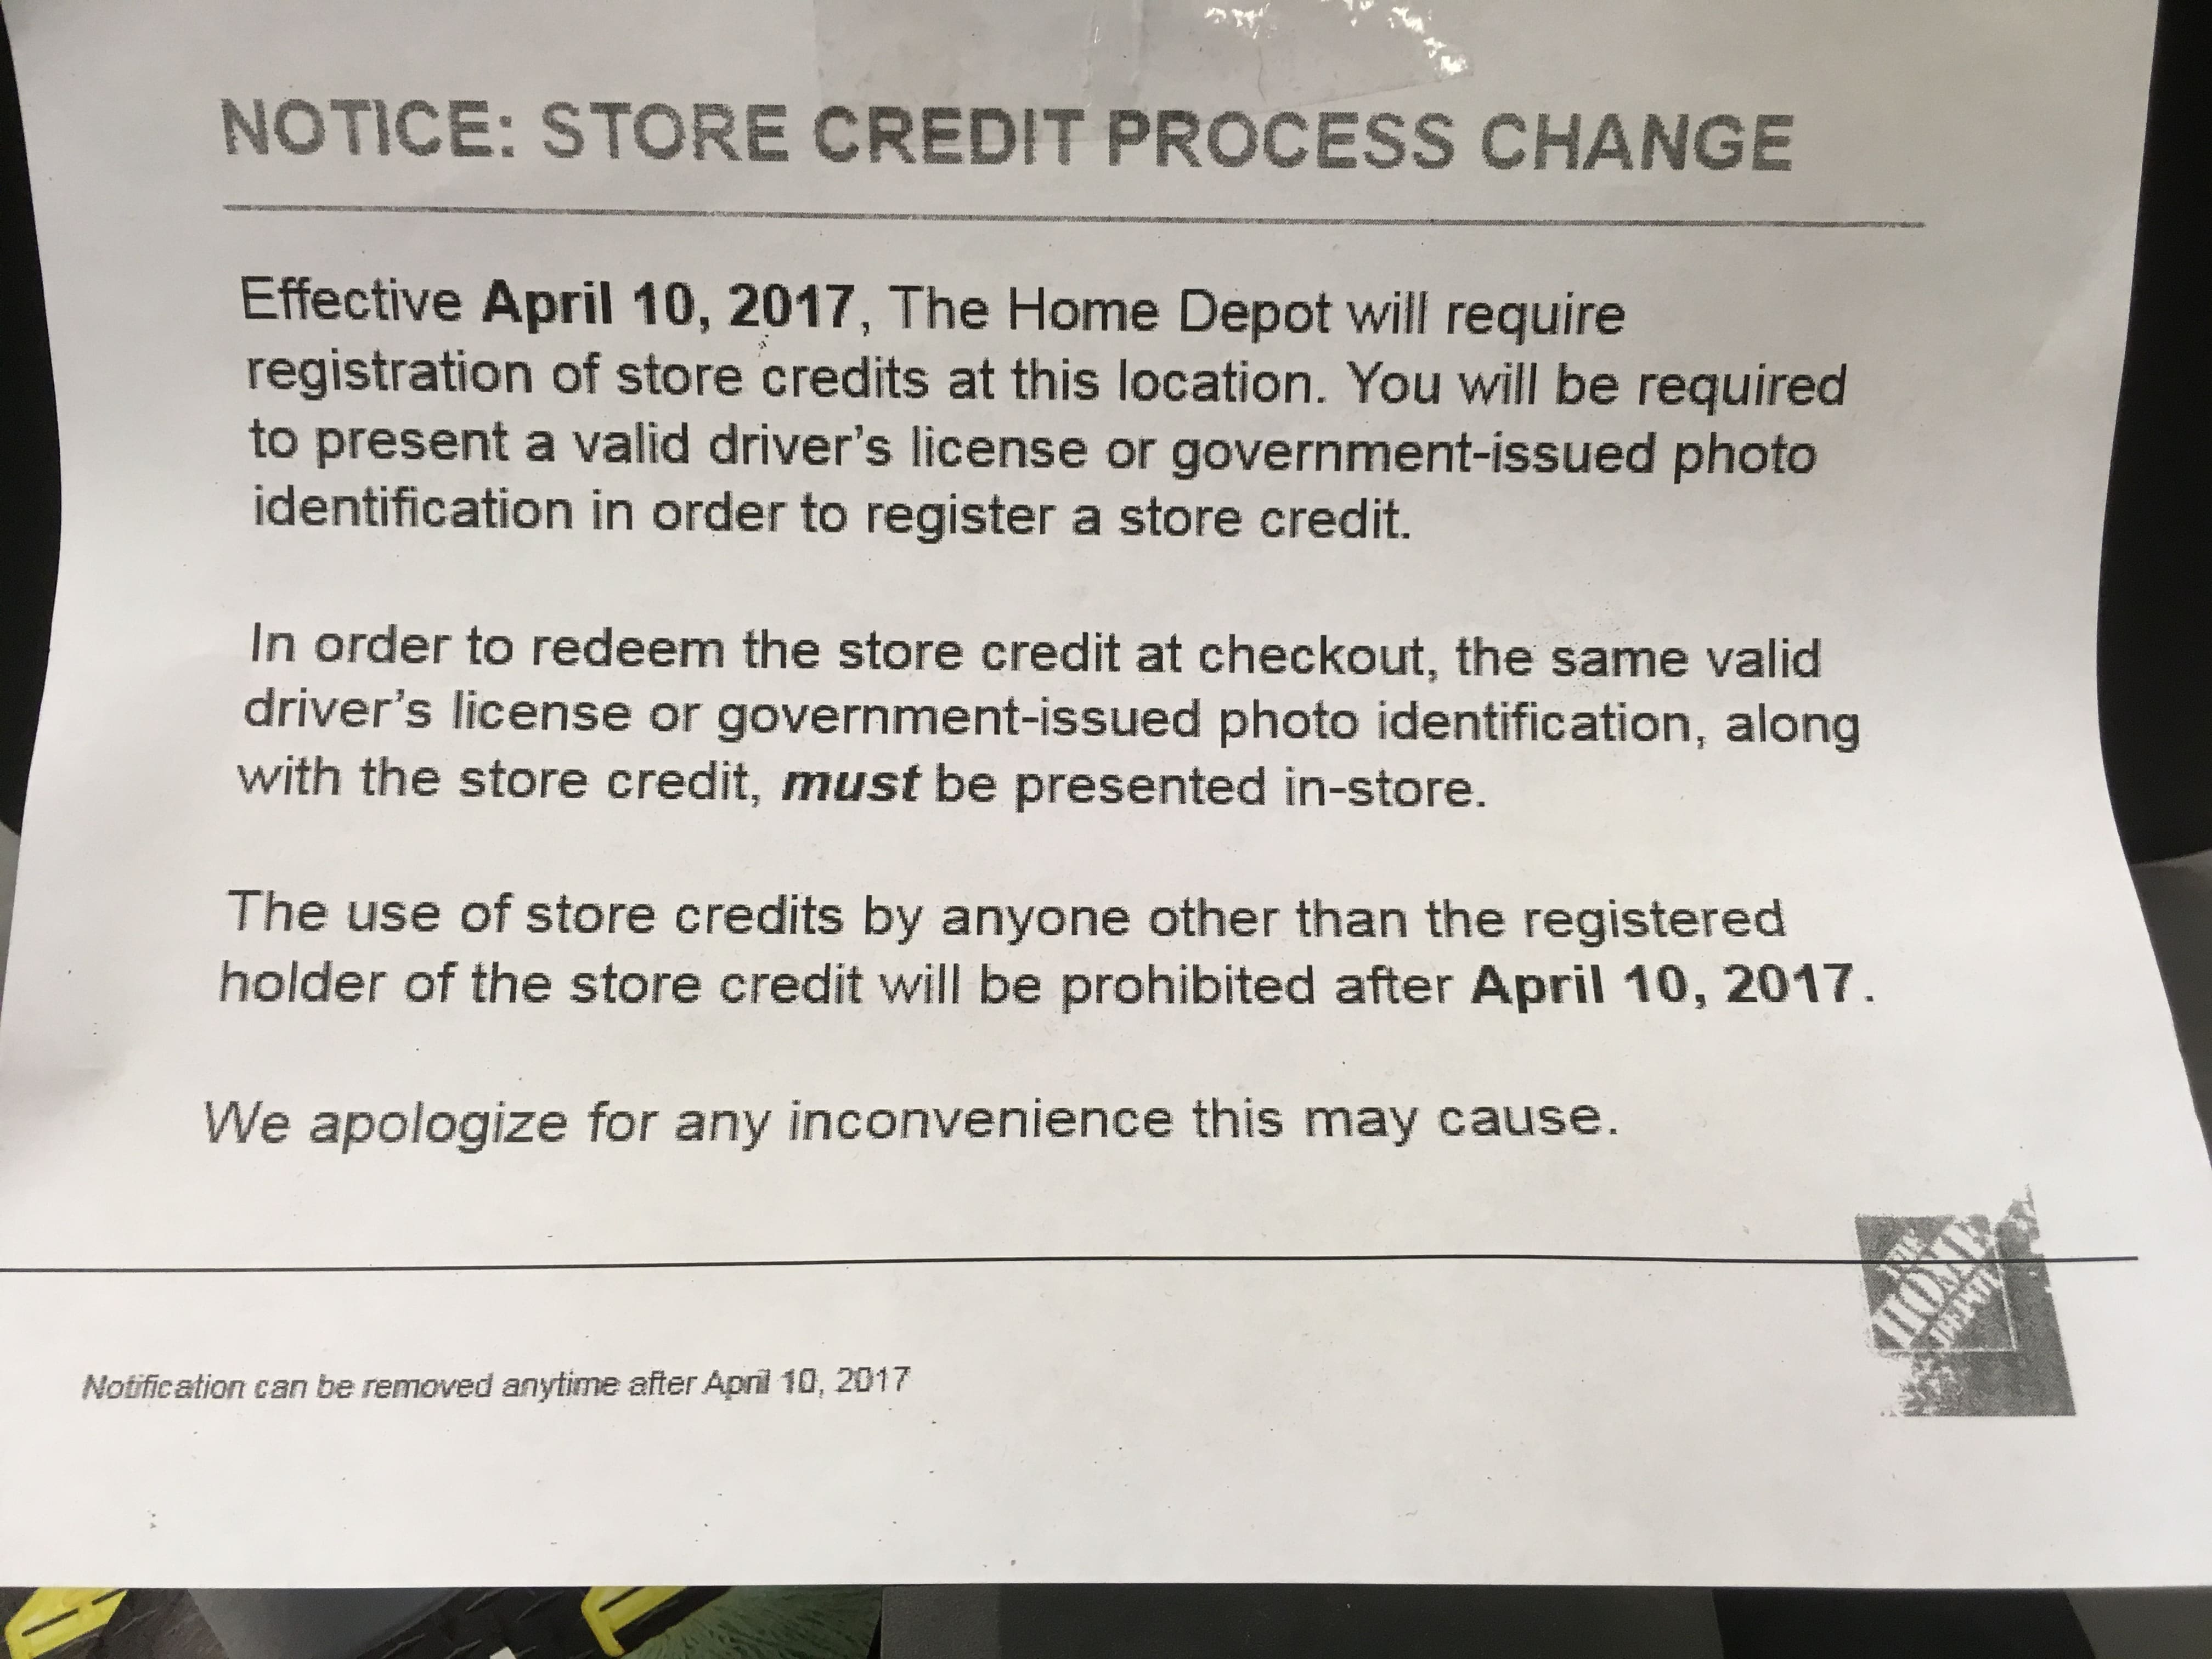 Home Depot Store Credit Policy Change - Slickdeals.net